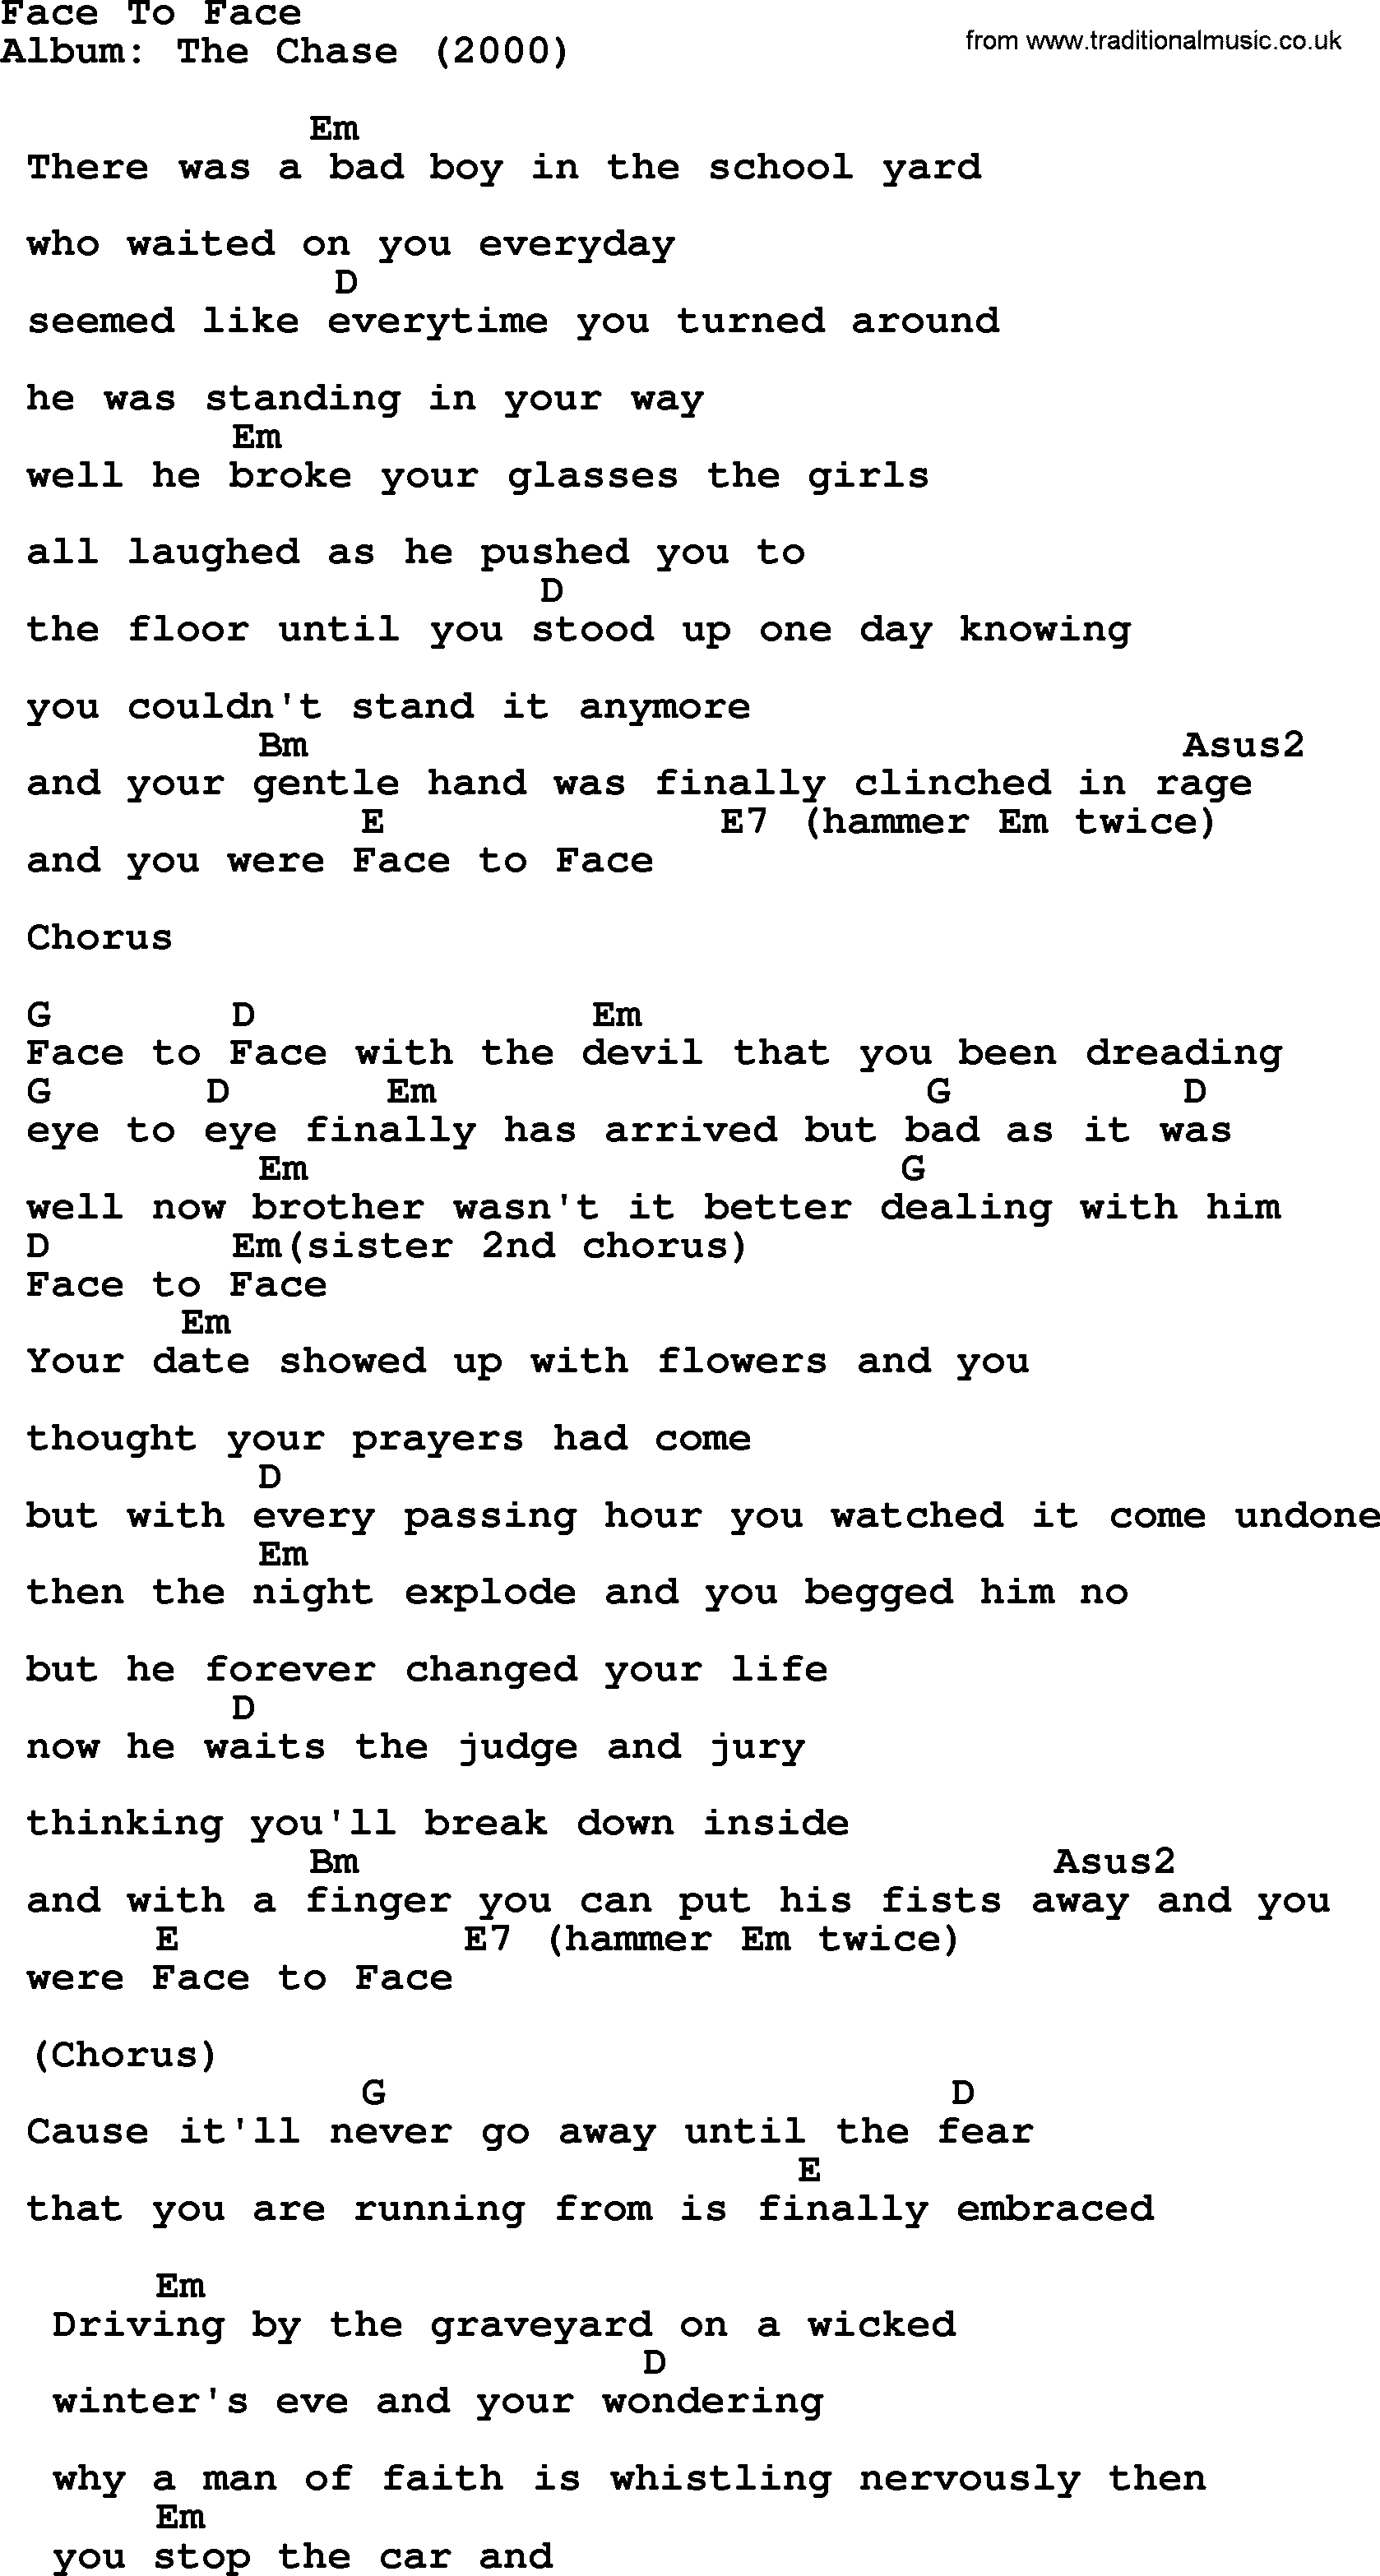 Face To Face By Garth Brooks Lyrics And Chords